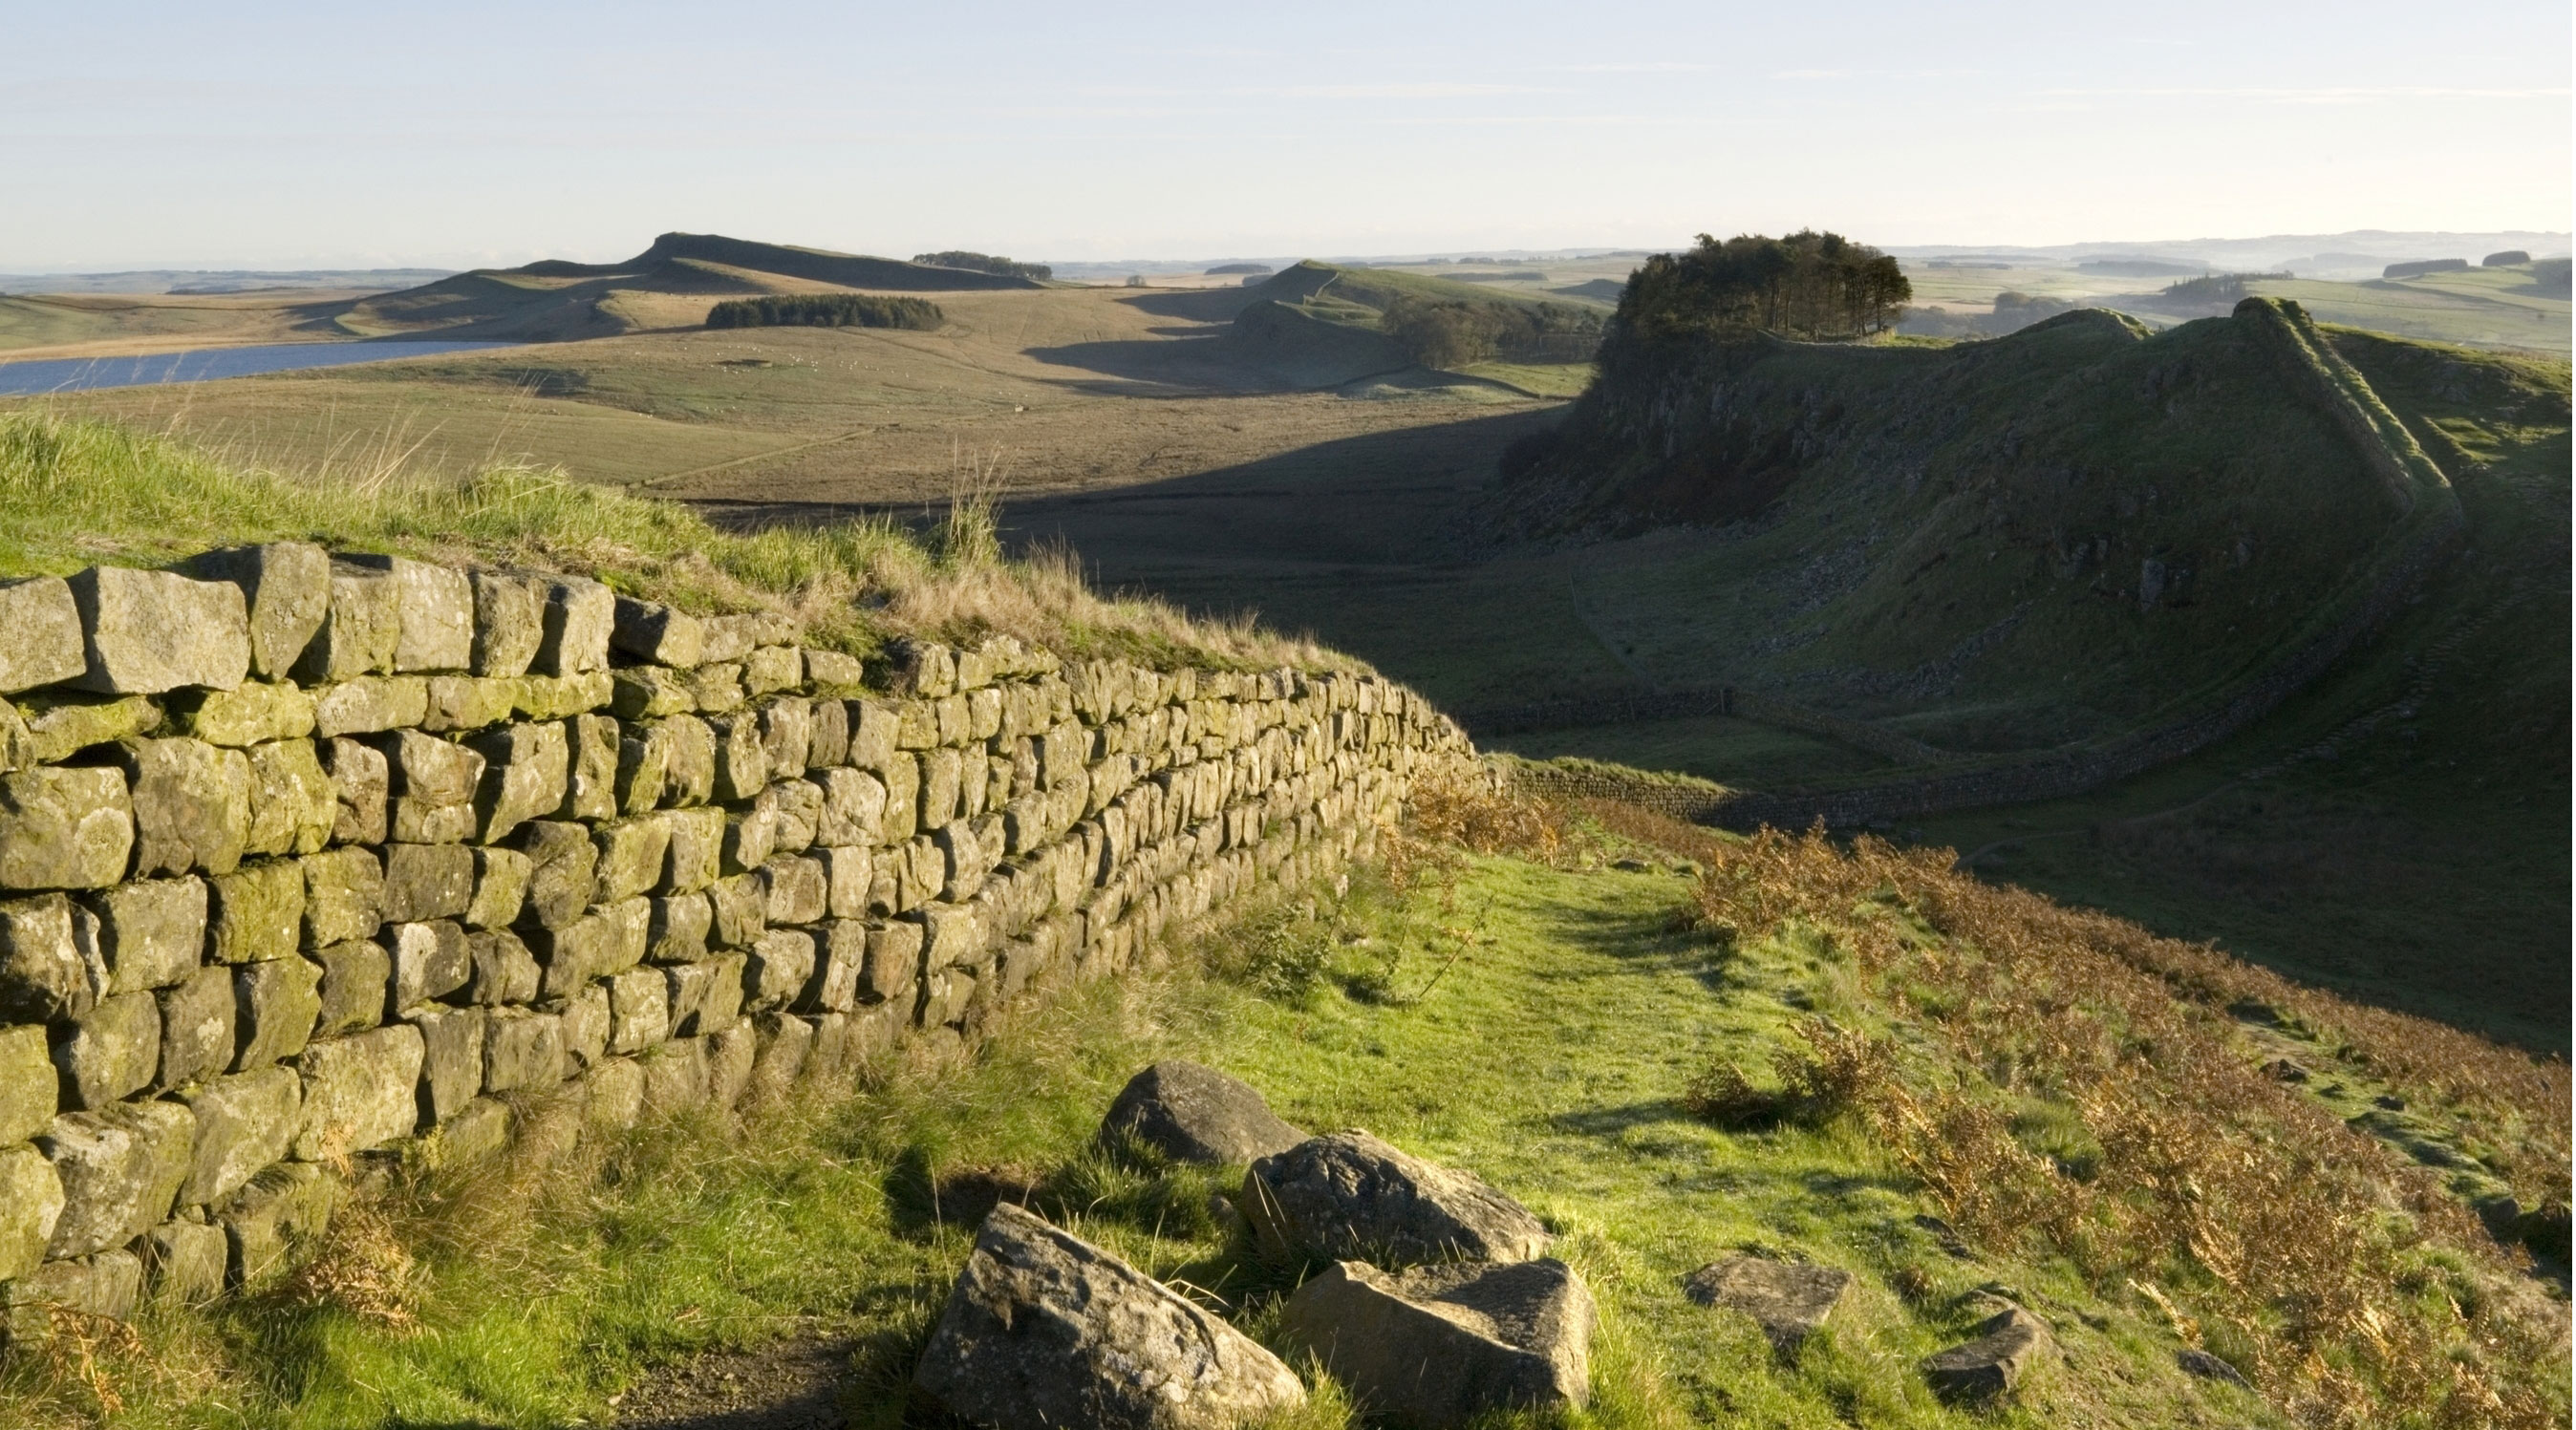 hadrian's wall (english-heritage.org.uk)